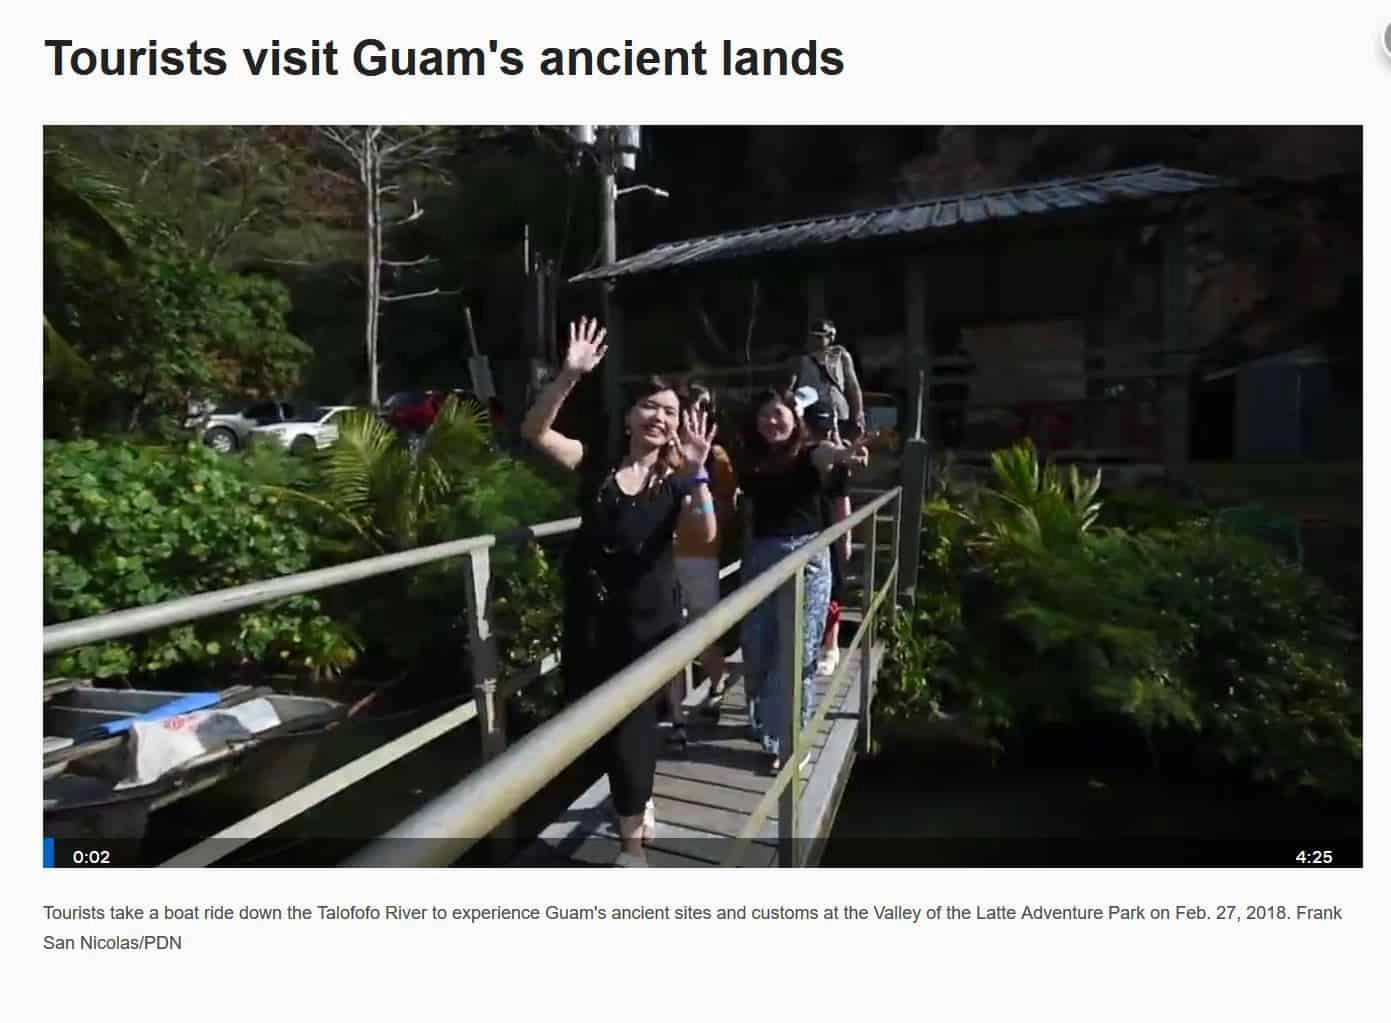 Guam's best tours, things to do on guam, guam tours, jungle cruise, kayaking, stand up paddle boarding, living history, true guam experience, experience guam